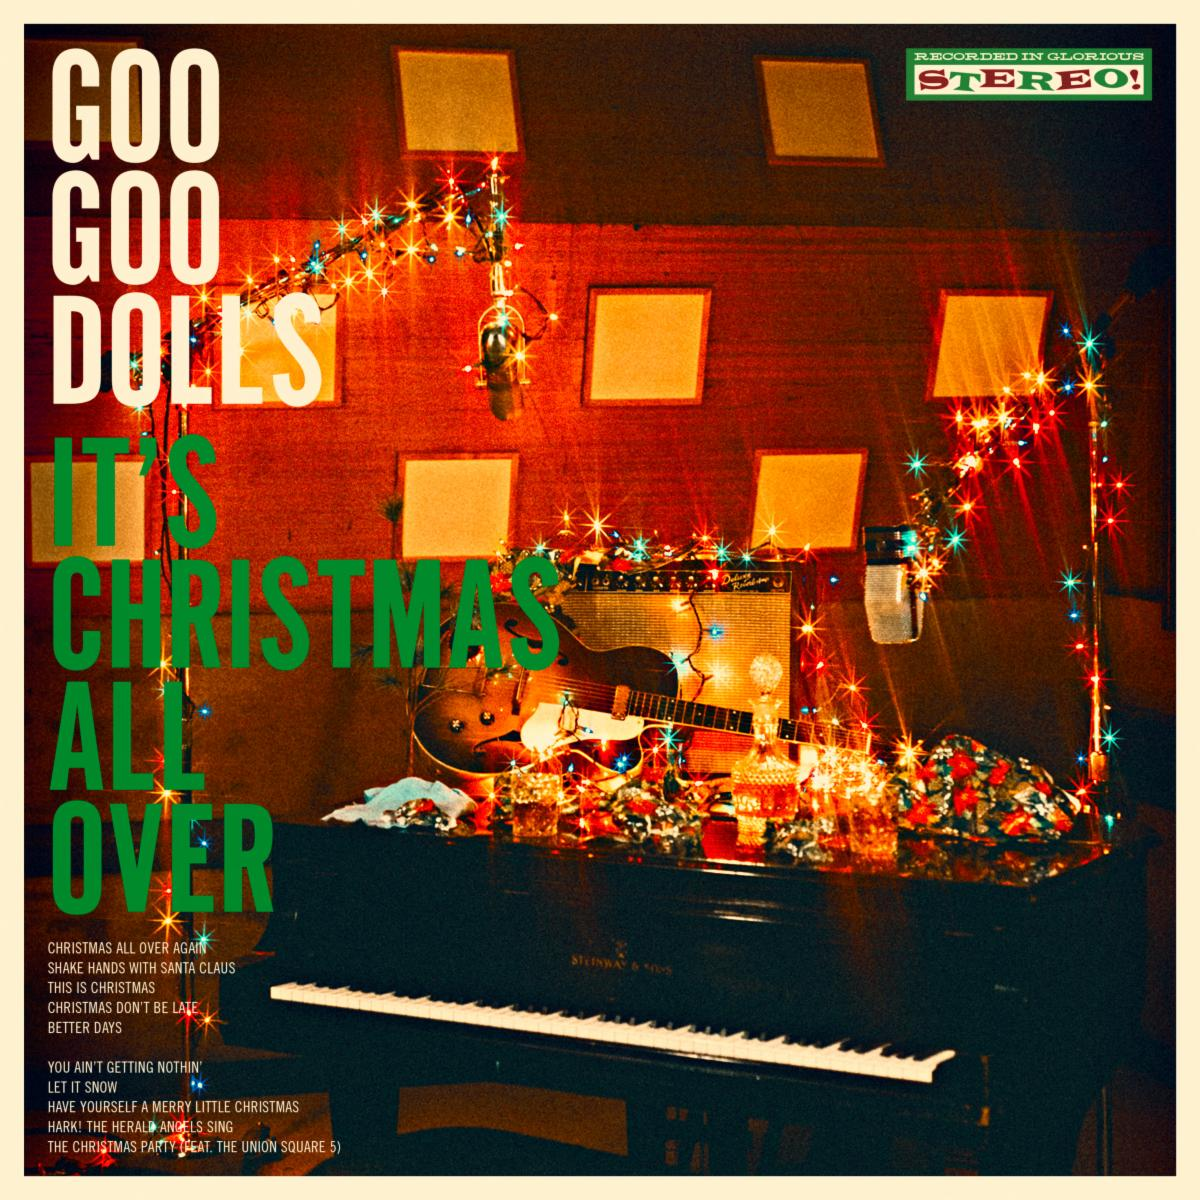 mail?url=https%3A%2F%2Ffiles.constantcontact.com%2F632039c4101%2Fd06e6a96 e76f 4788 a95a 642986c0a80b - Goo Goo Dolls Officially Unveil First-Ever Holiday Album It's Christmas All Over